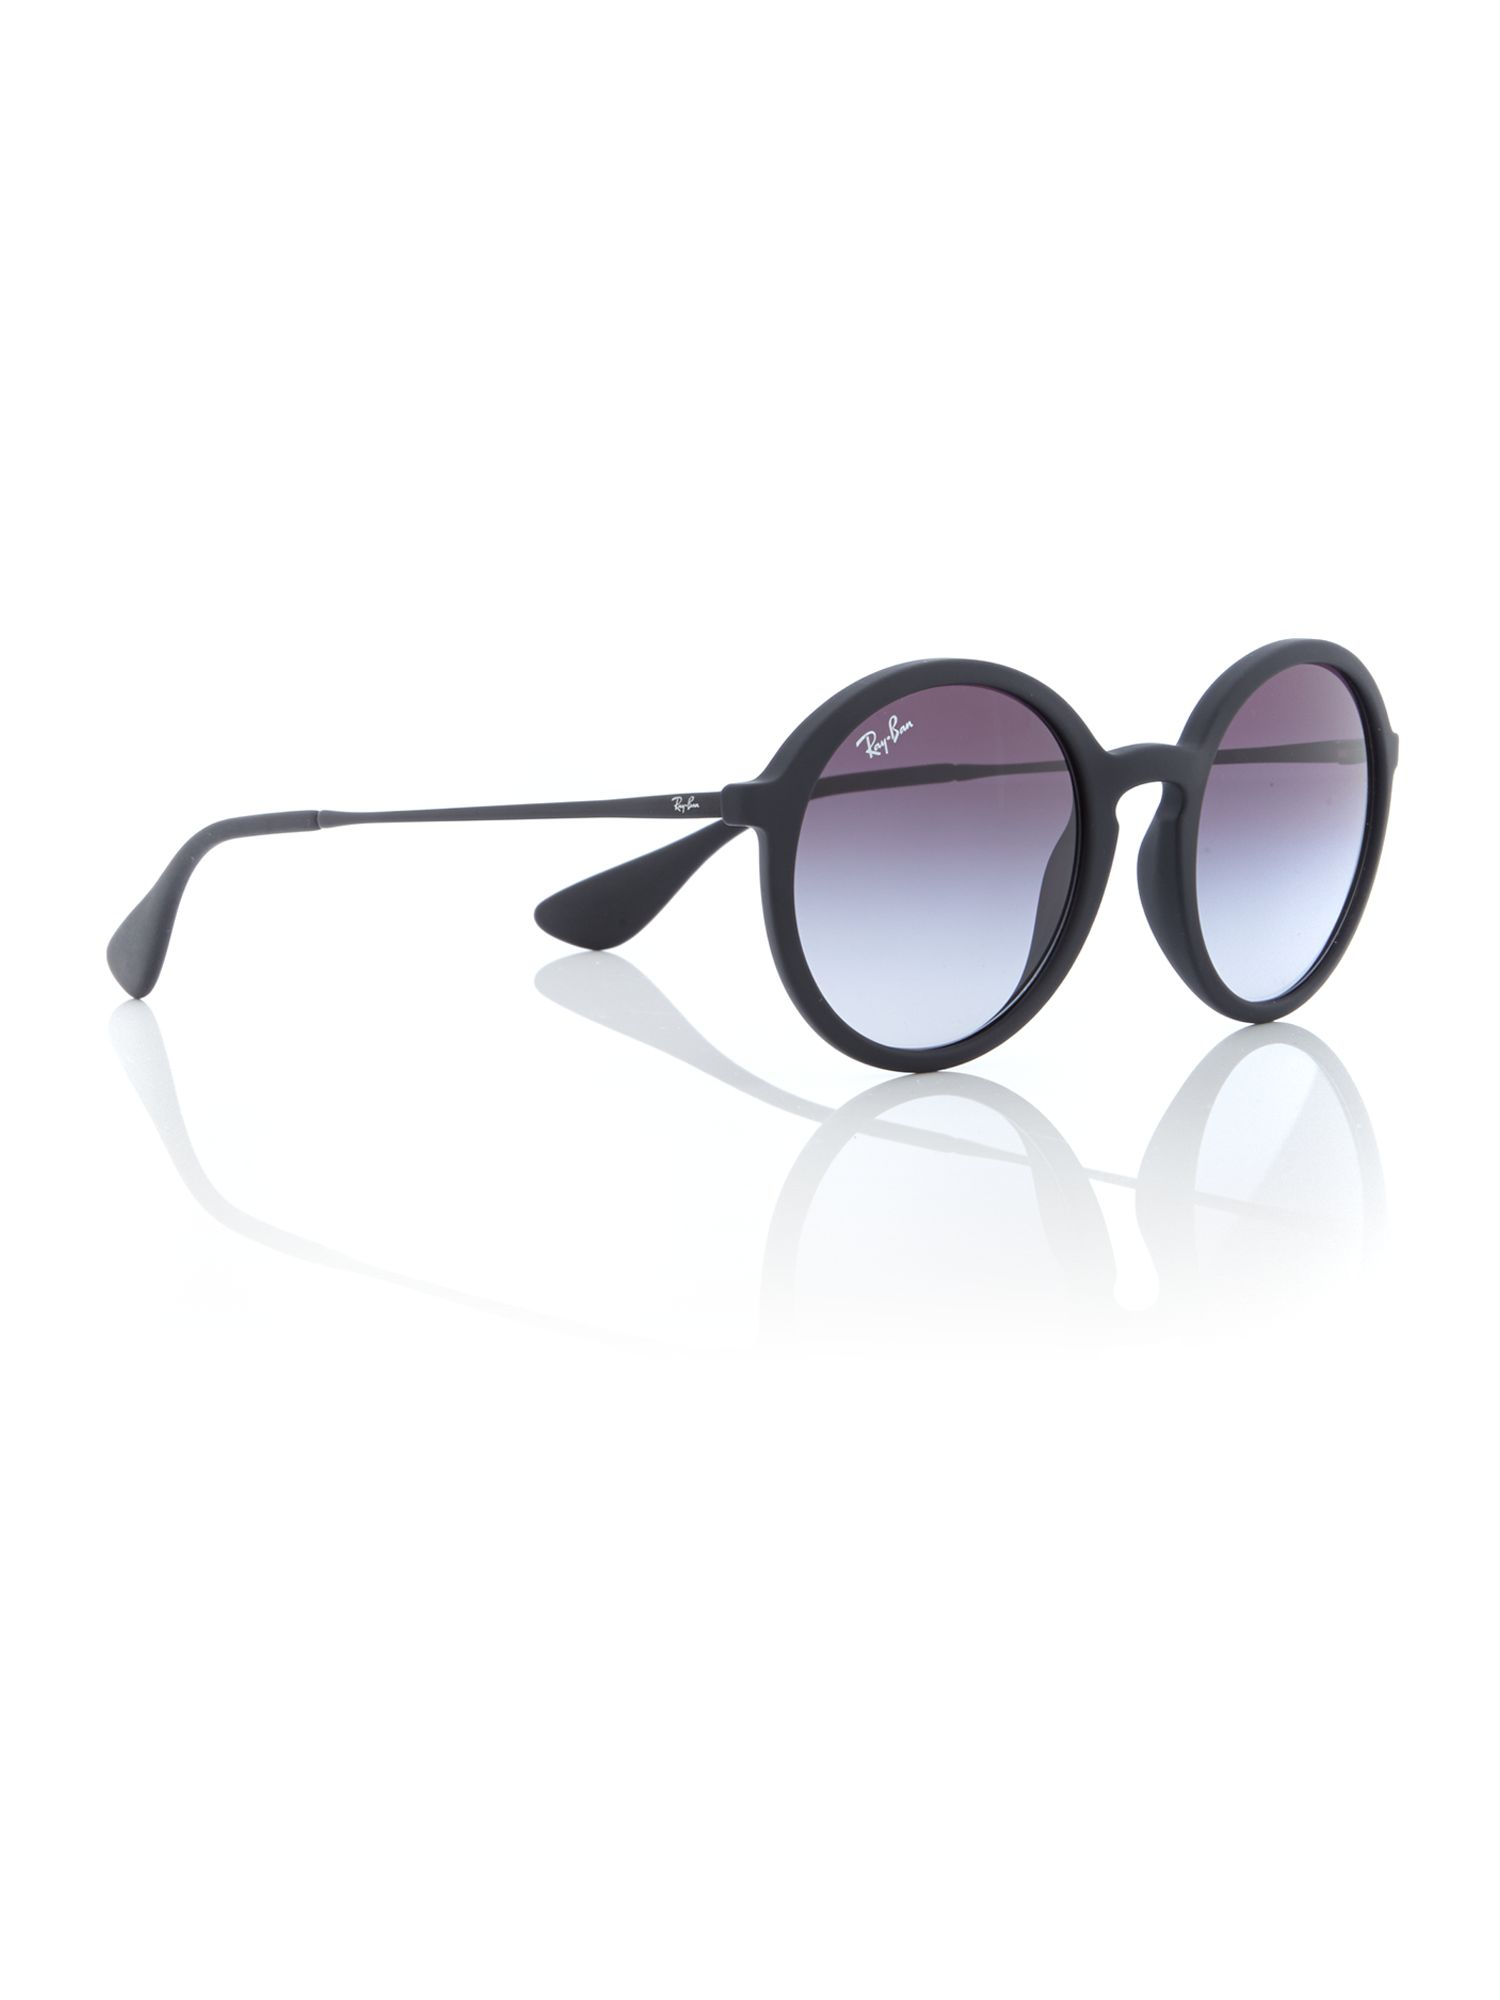 44ef516d8a Ray Ban Rb4125 Cats Sunglasses Tortoise Frame Crystal Brown Grad ...